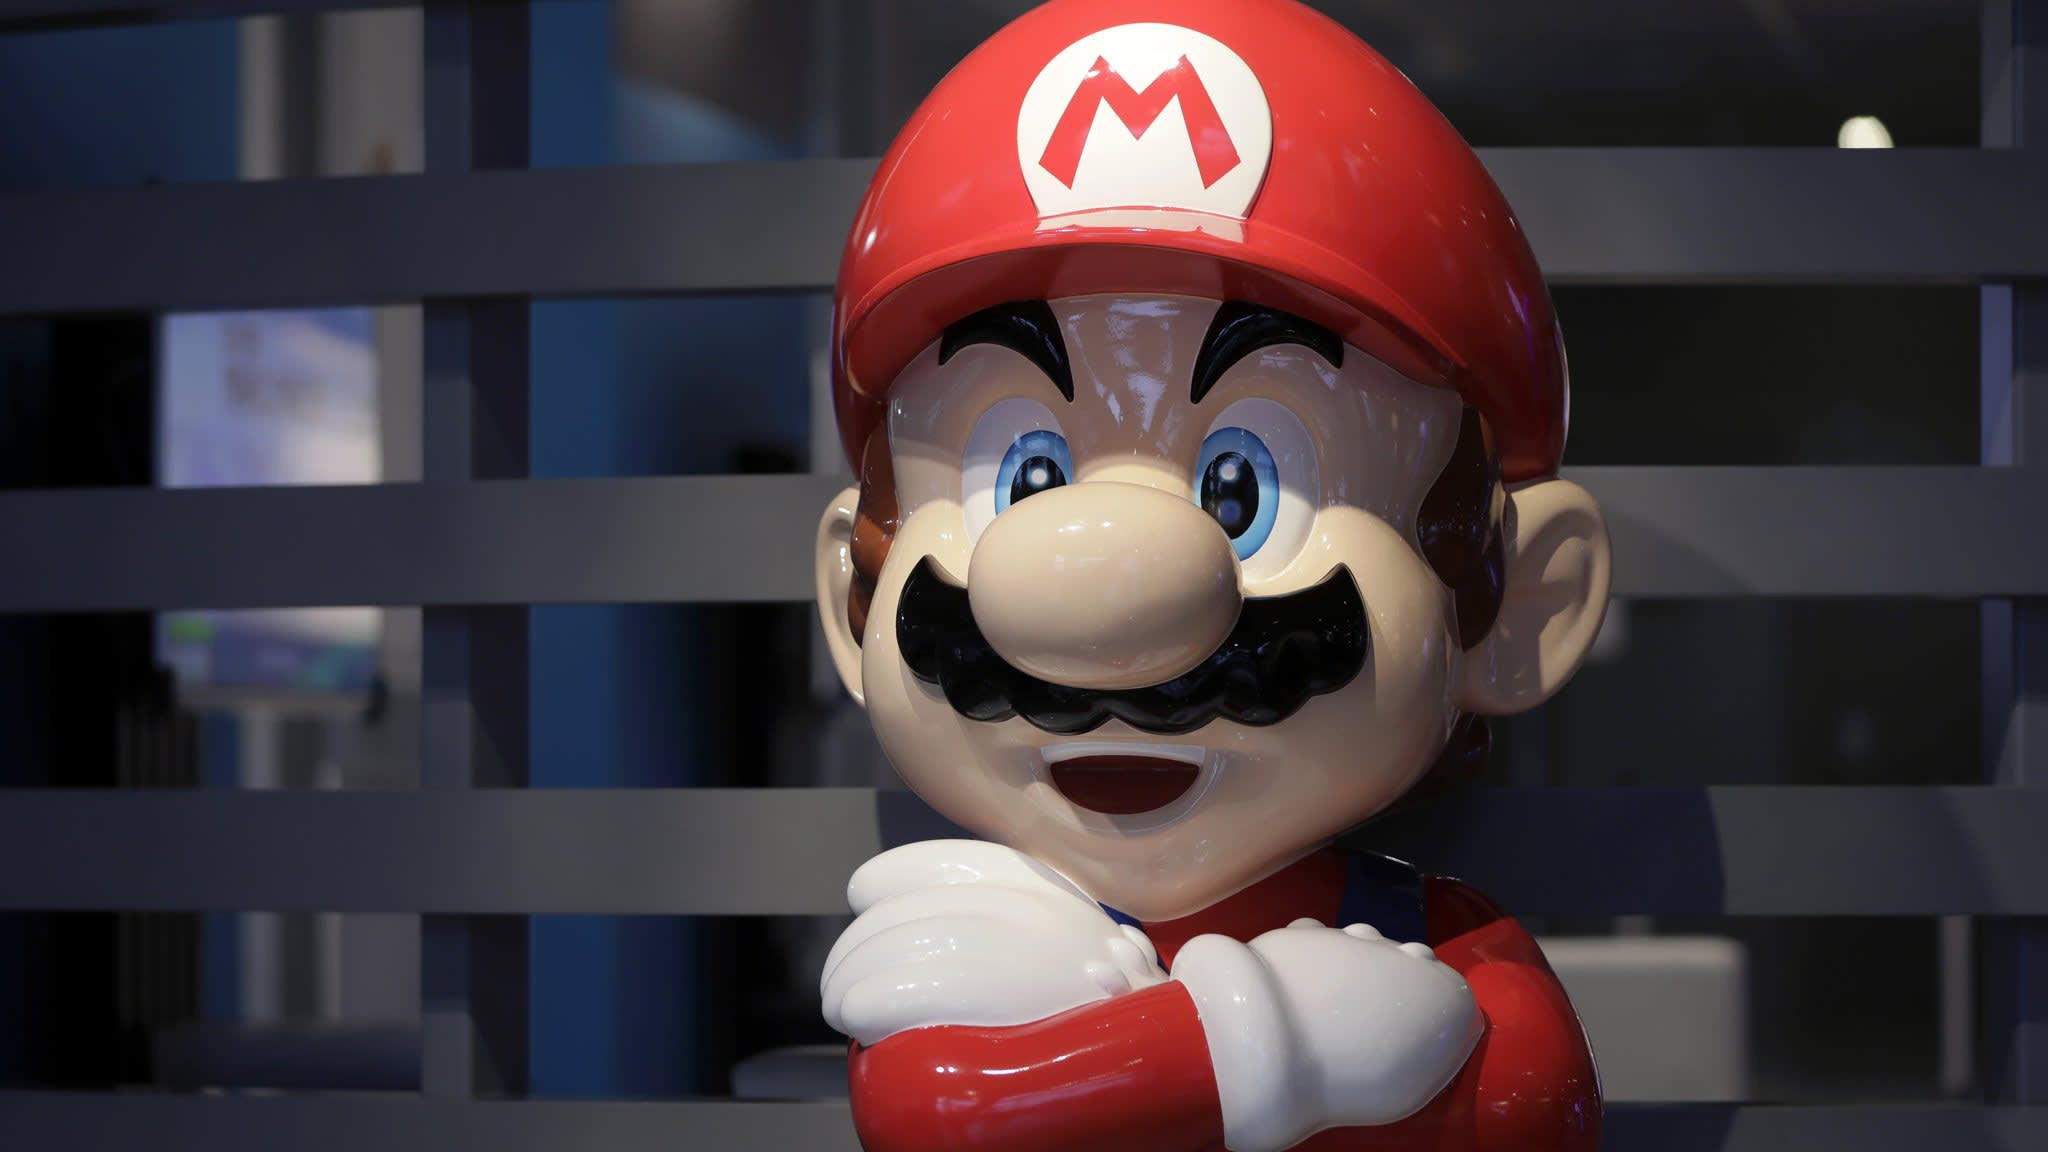 Nintendo faces calls to split stock to aid governance